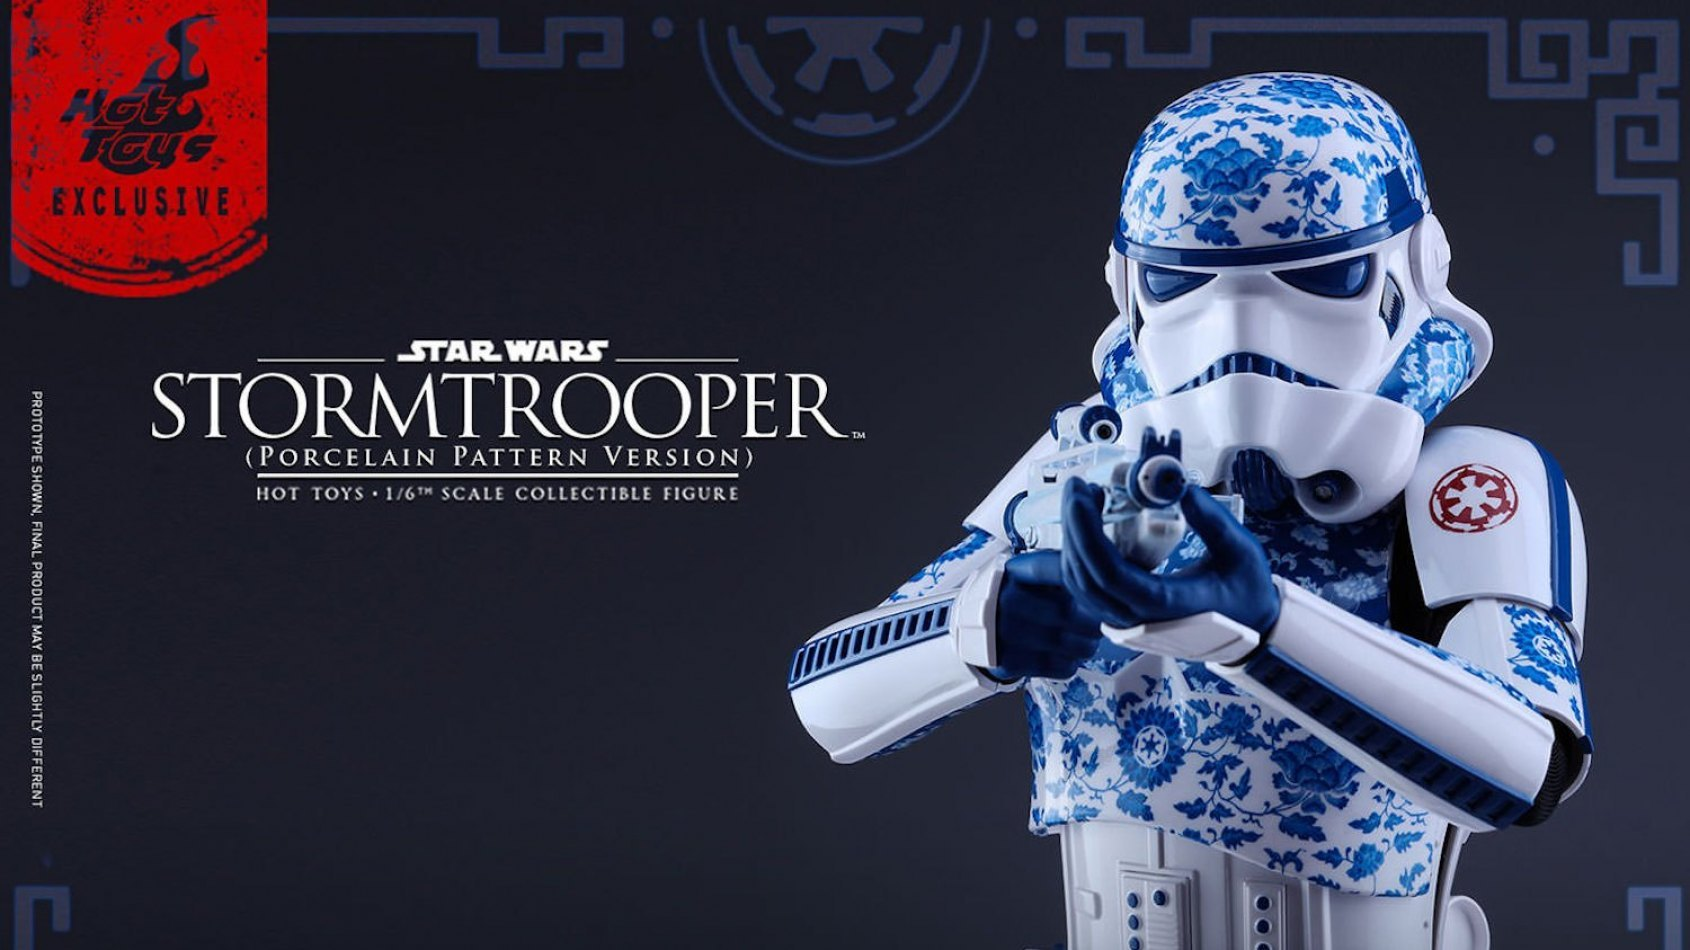 Insolite: stormtrooper version porcelaine par Hot Toys